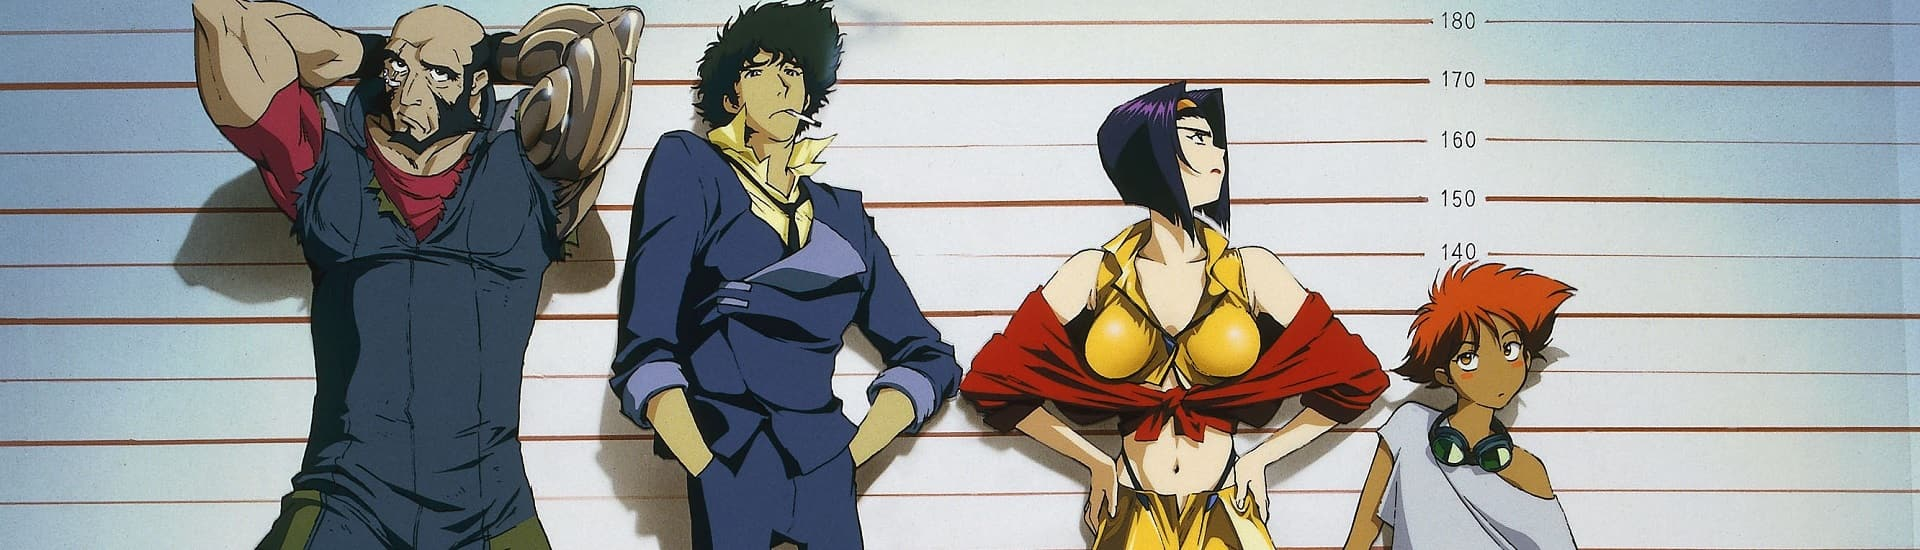 Cowboy Bebop Live Action TV Series